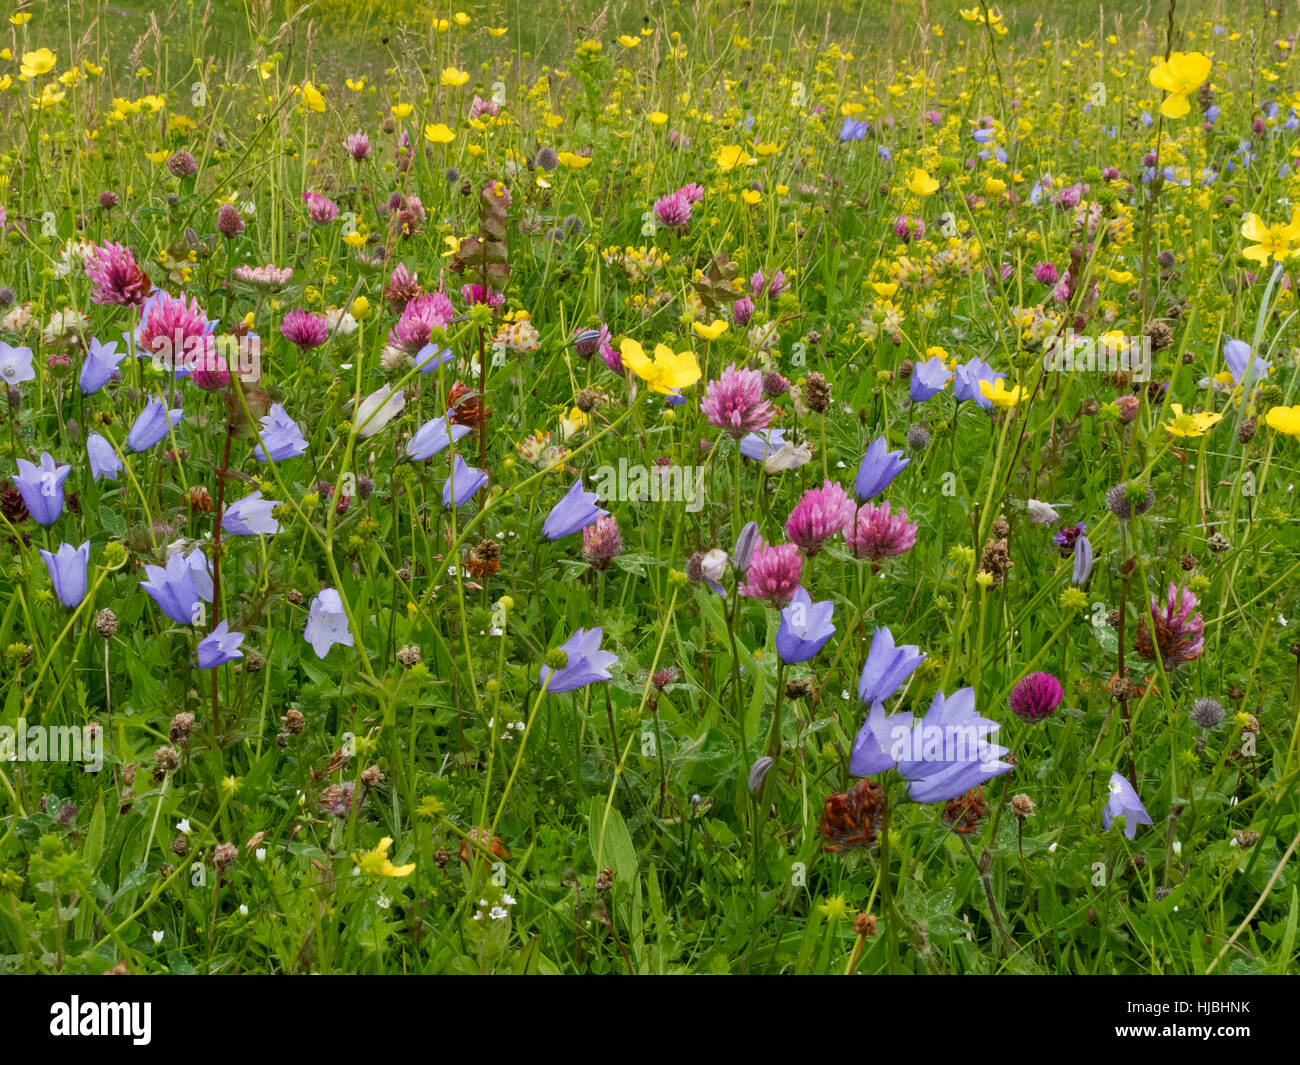 Machair habitat on the isle of Vatersay, in the Outer Hebrides, showing harebell, red clover and yellow rattle. - Stock Image